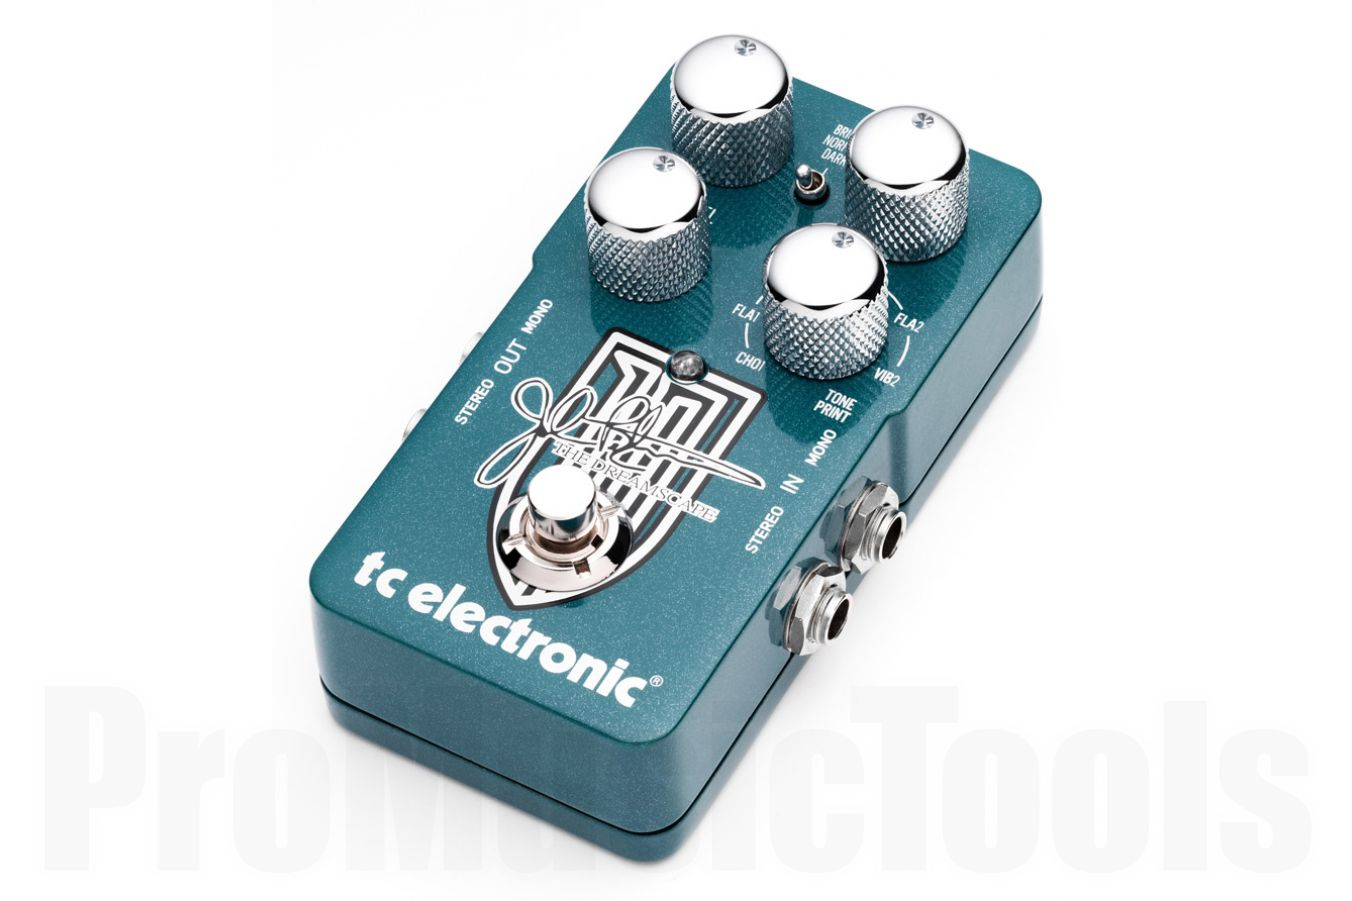 TC Electronic The Dreamscape John Petrucci Signature Pedal - b-stock (1x opened box)